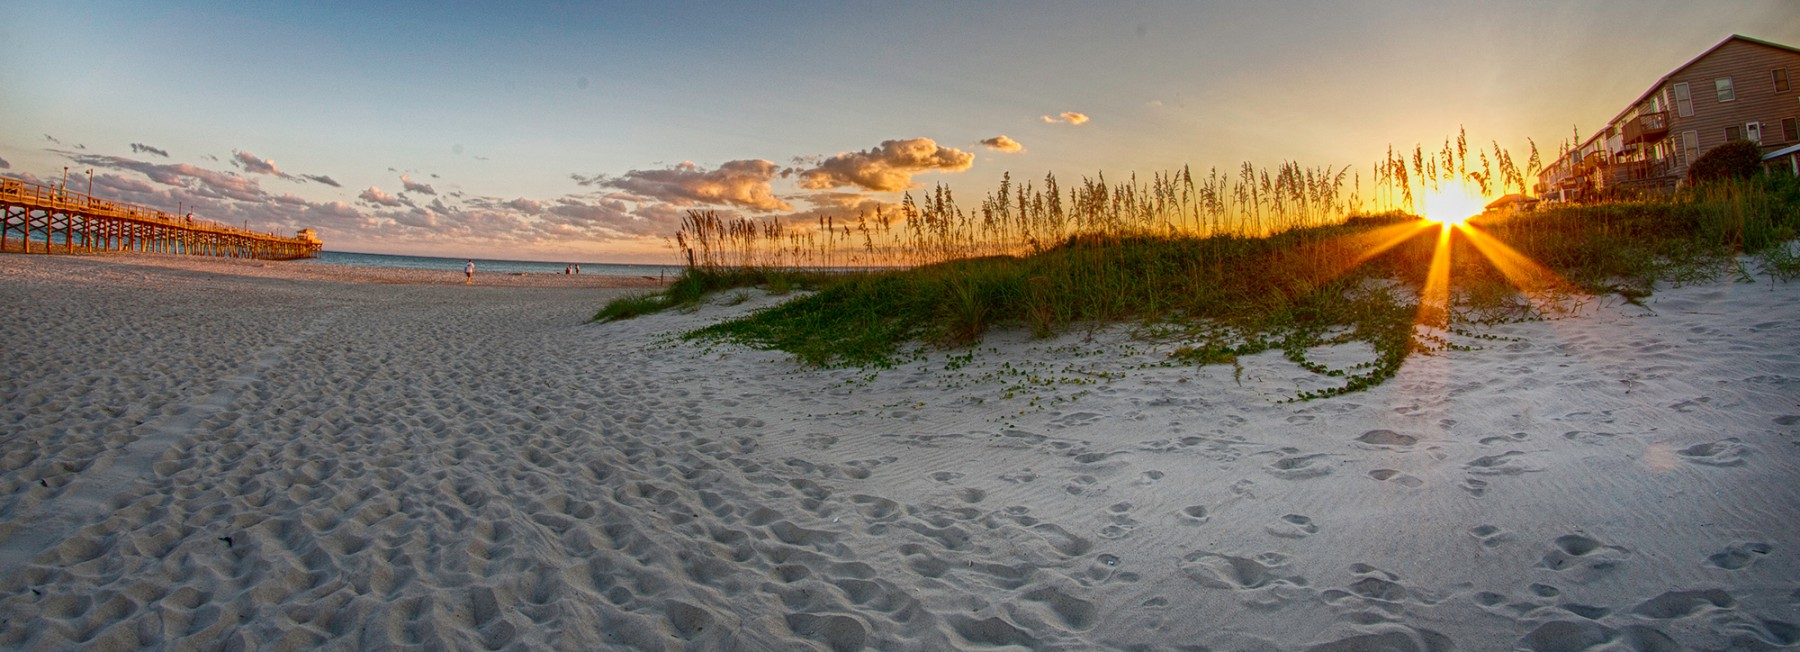 The best florida beaches for your vacation needs blogged for Warmest florida beaches in december